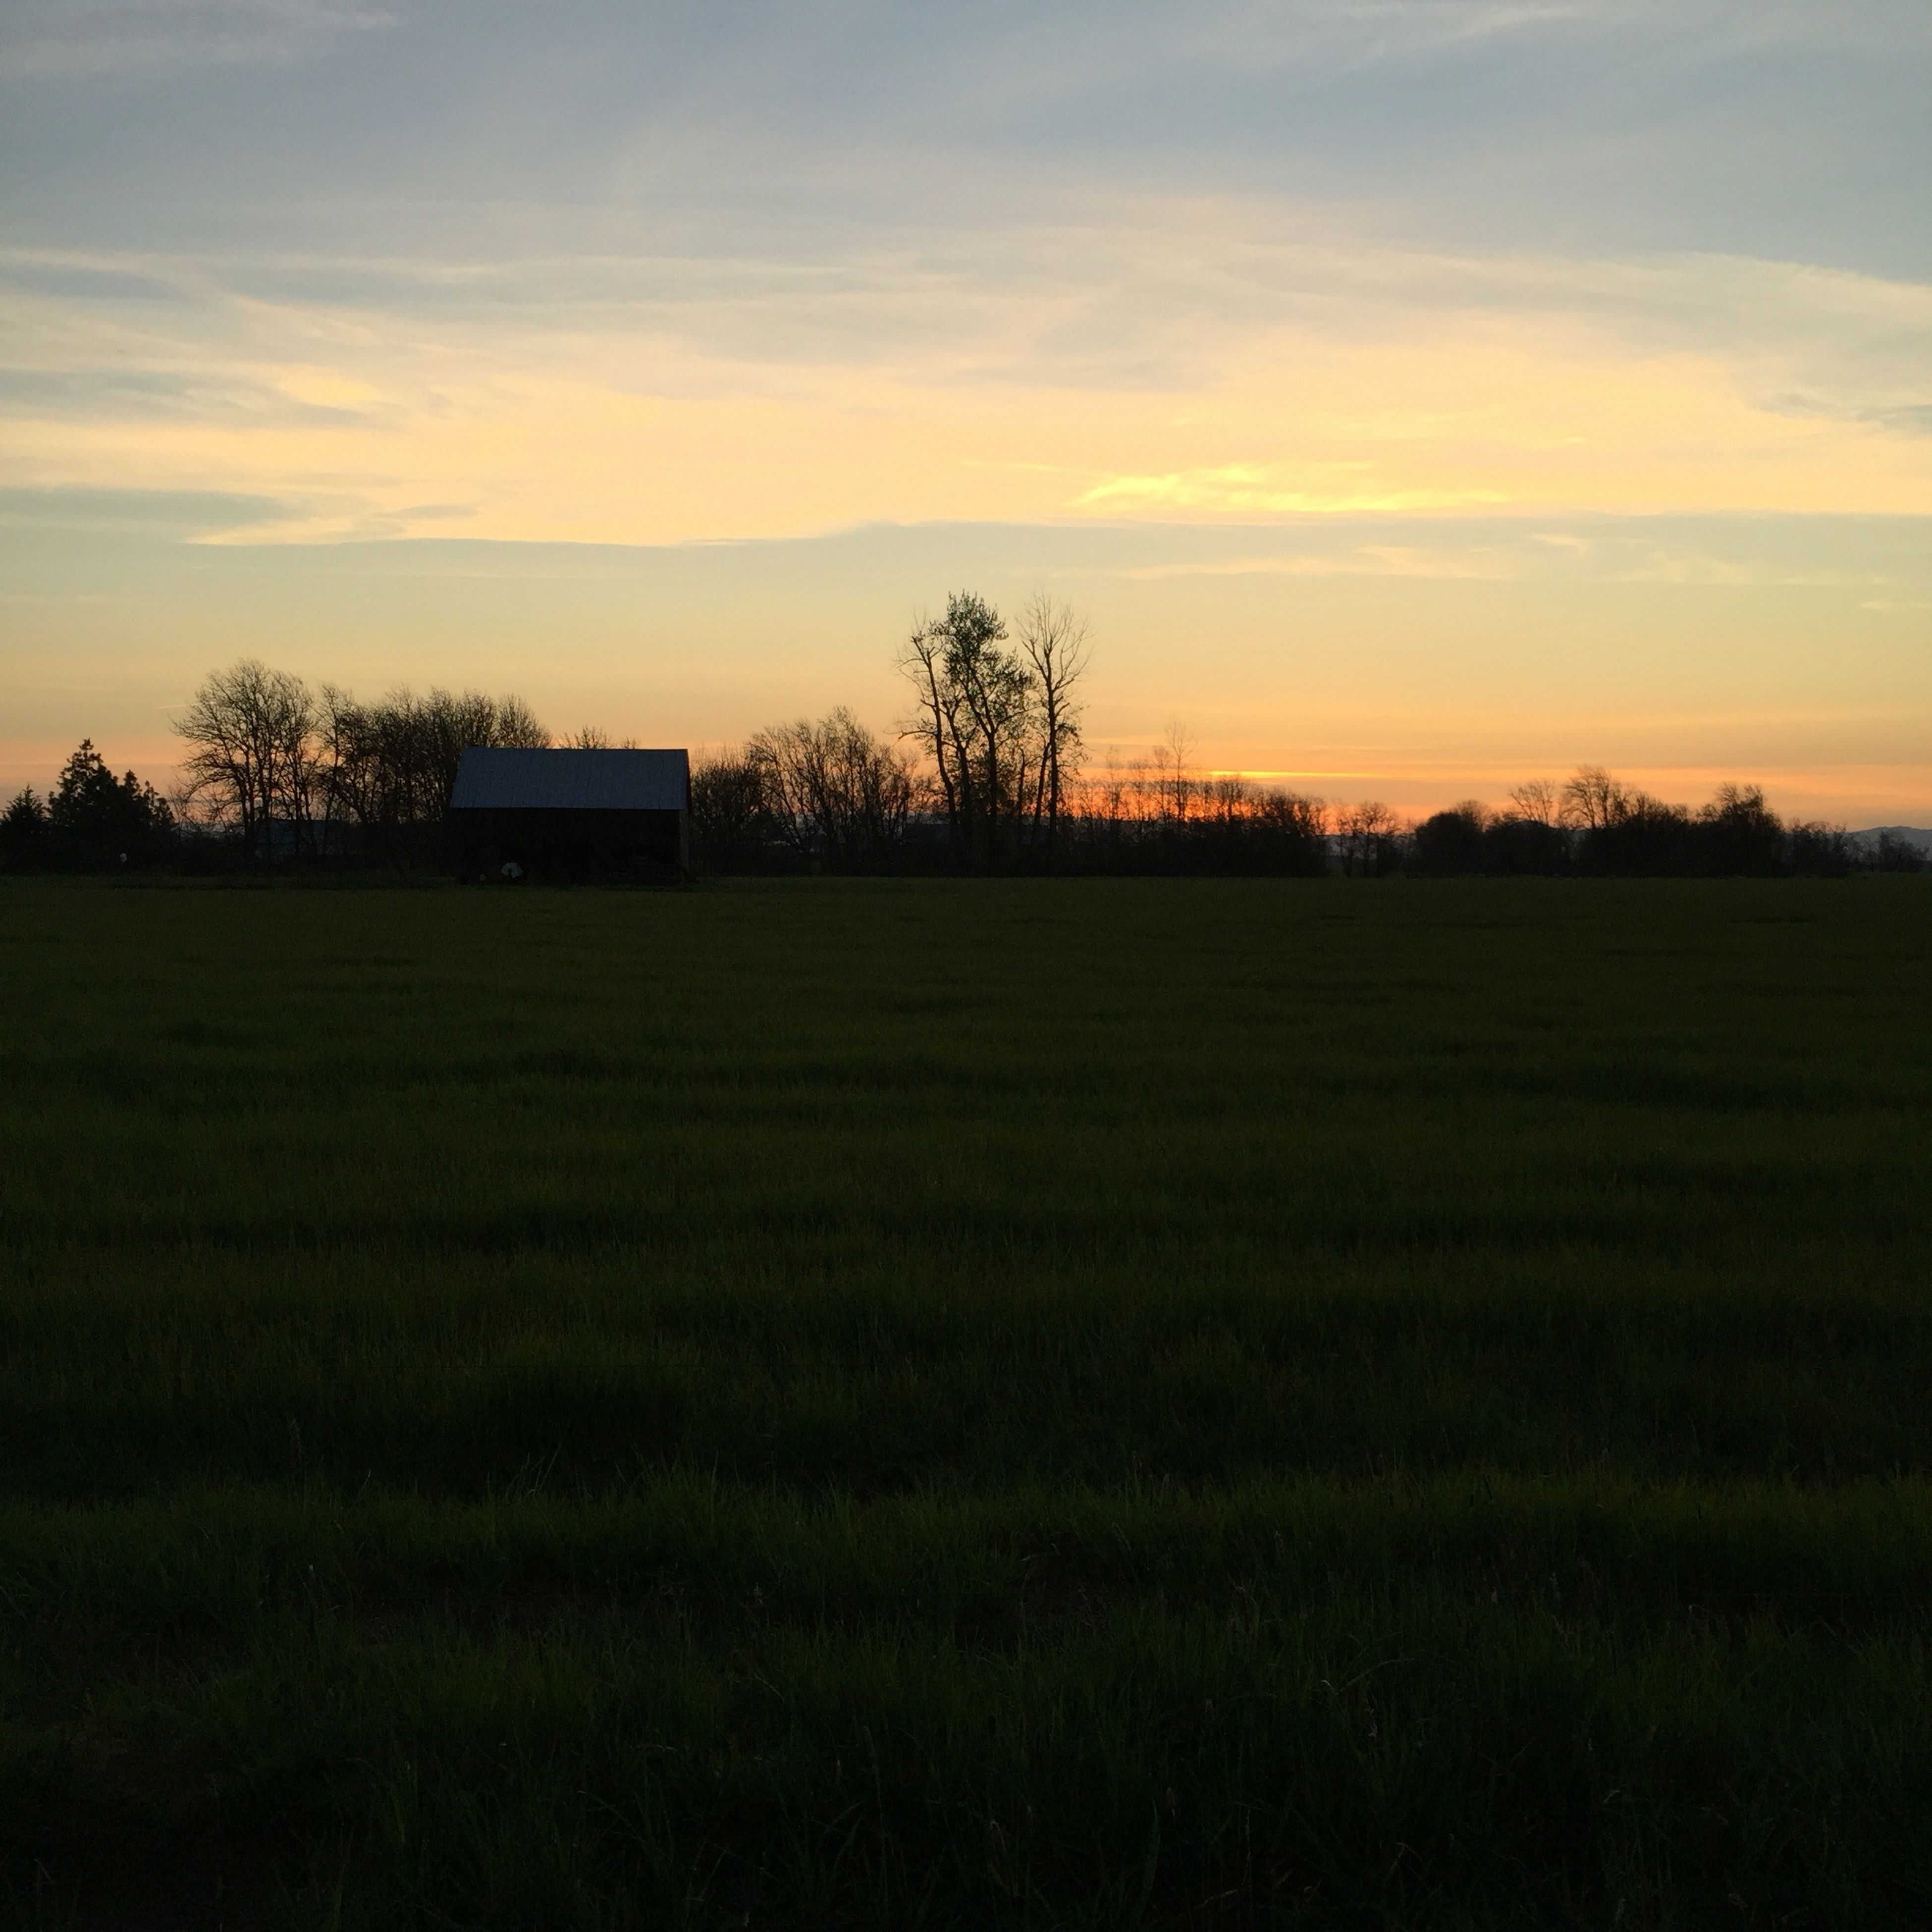 sunset, field, sky, grass, landscape, built structure, tree, building exterior, architecture, tranquility, tranquil scene, scenics, beauty in nature, nature, grassy, cloud - sky, silhouette, rural scene, house, growth